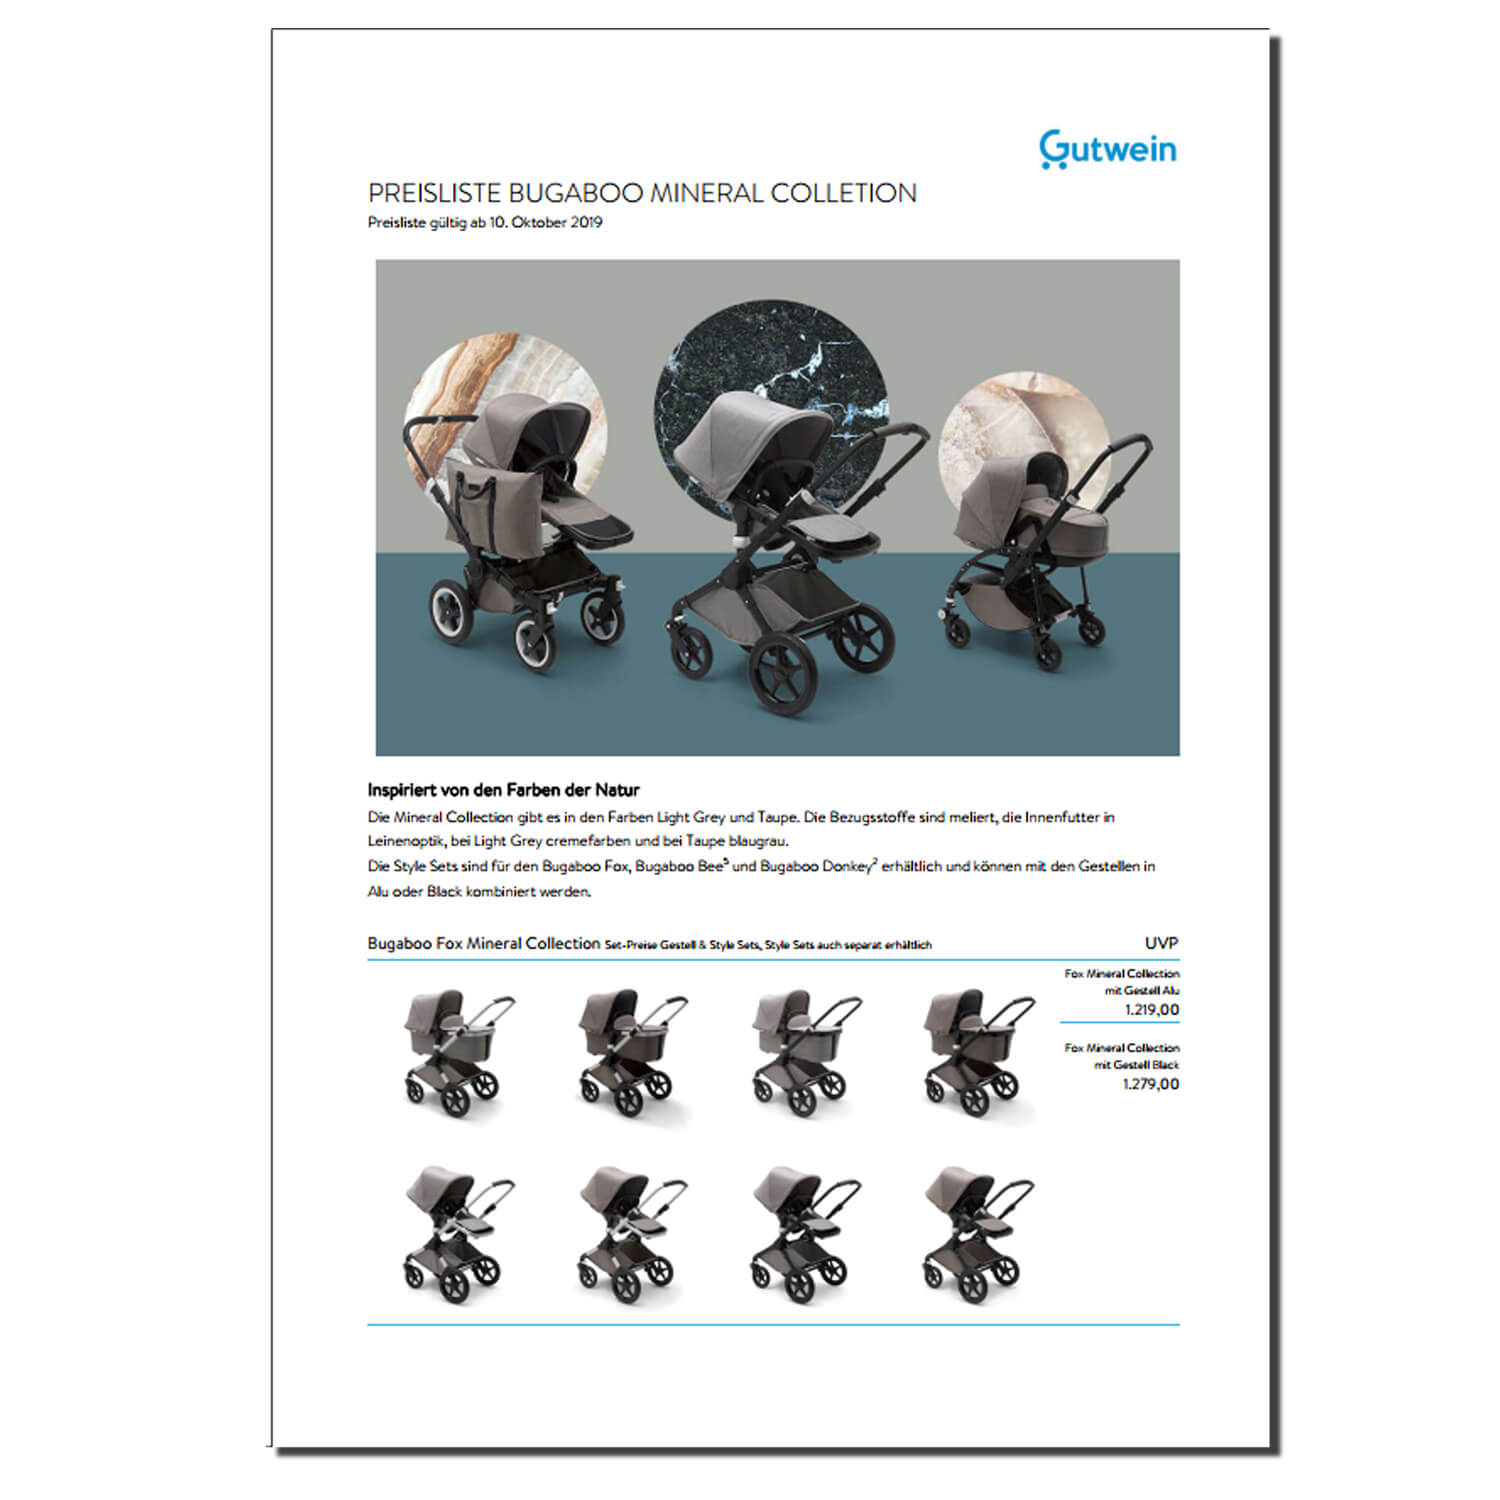 Bugaboo Mineral Collection Preisliste